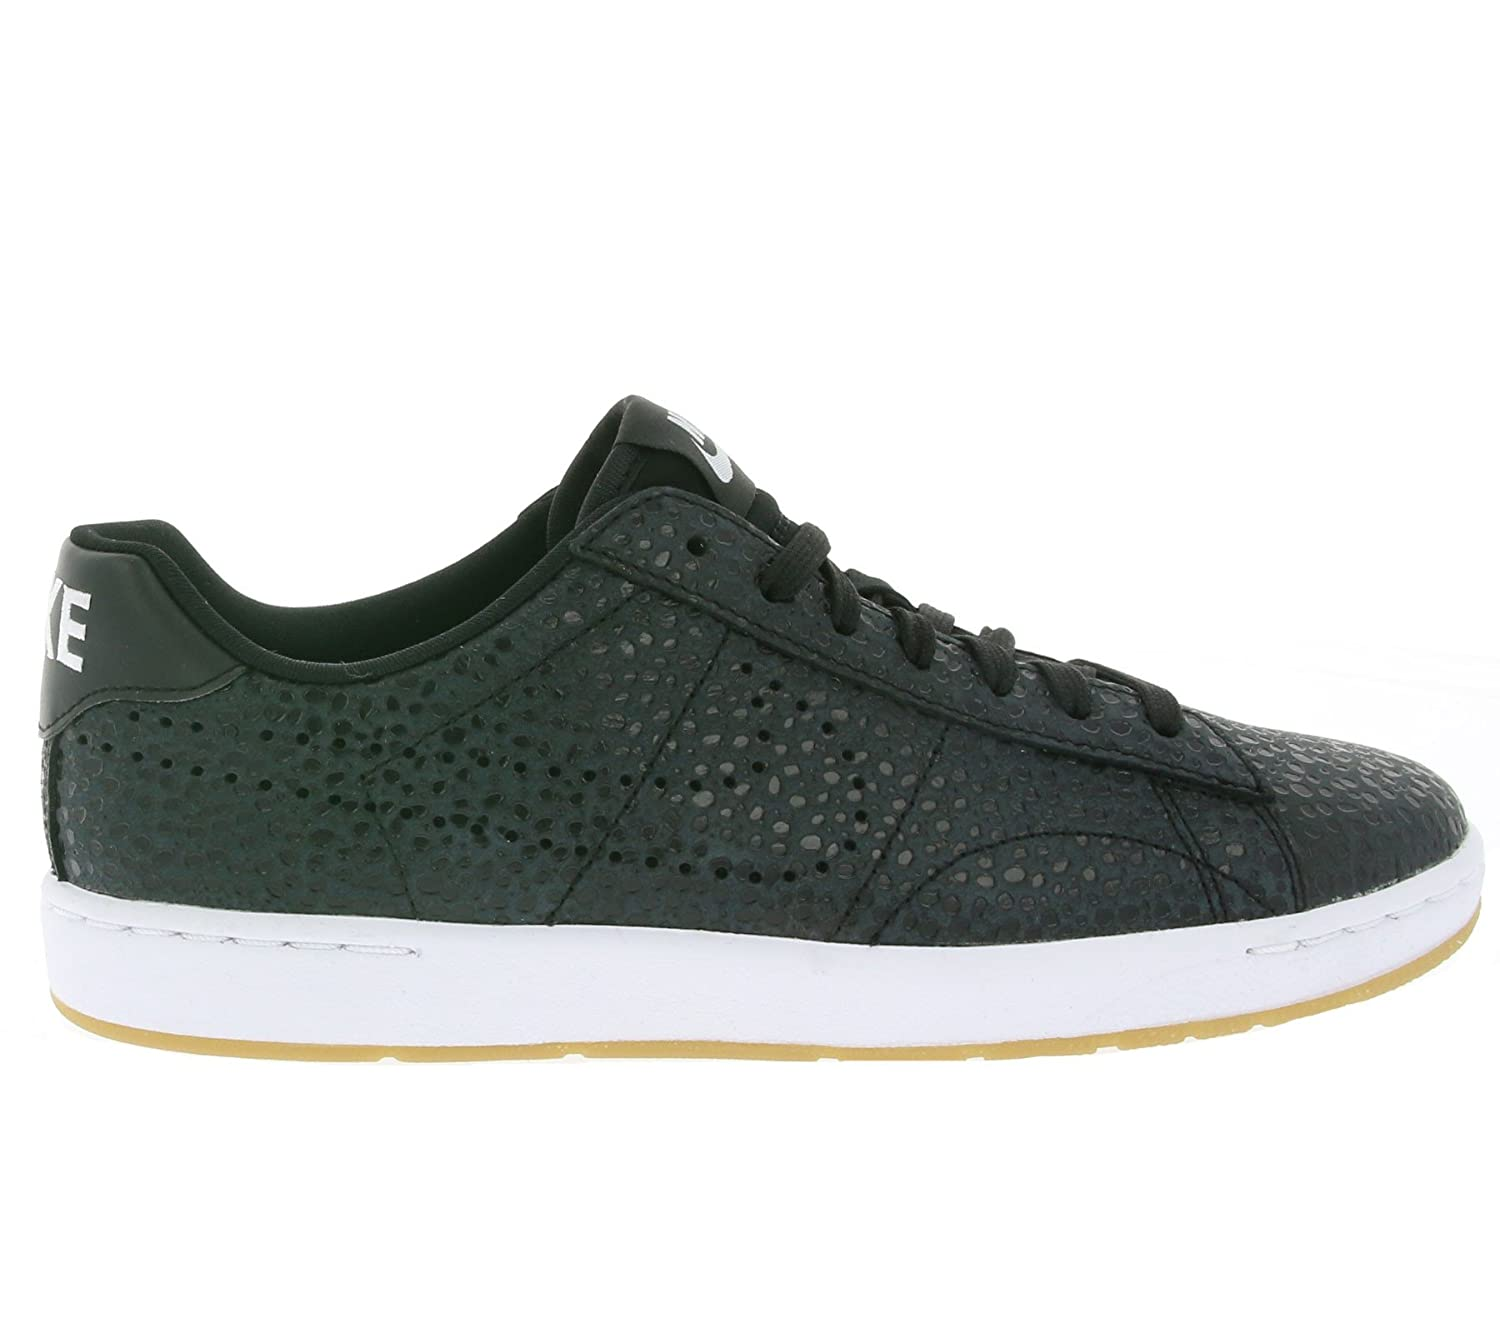 quality design ae96c 26565 Nike Women s W Tennis Classic Ultra Prm Sneakers